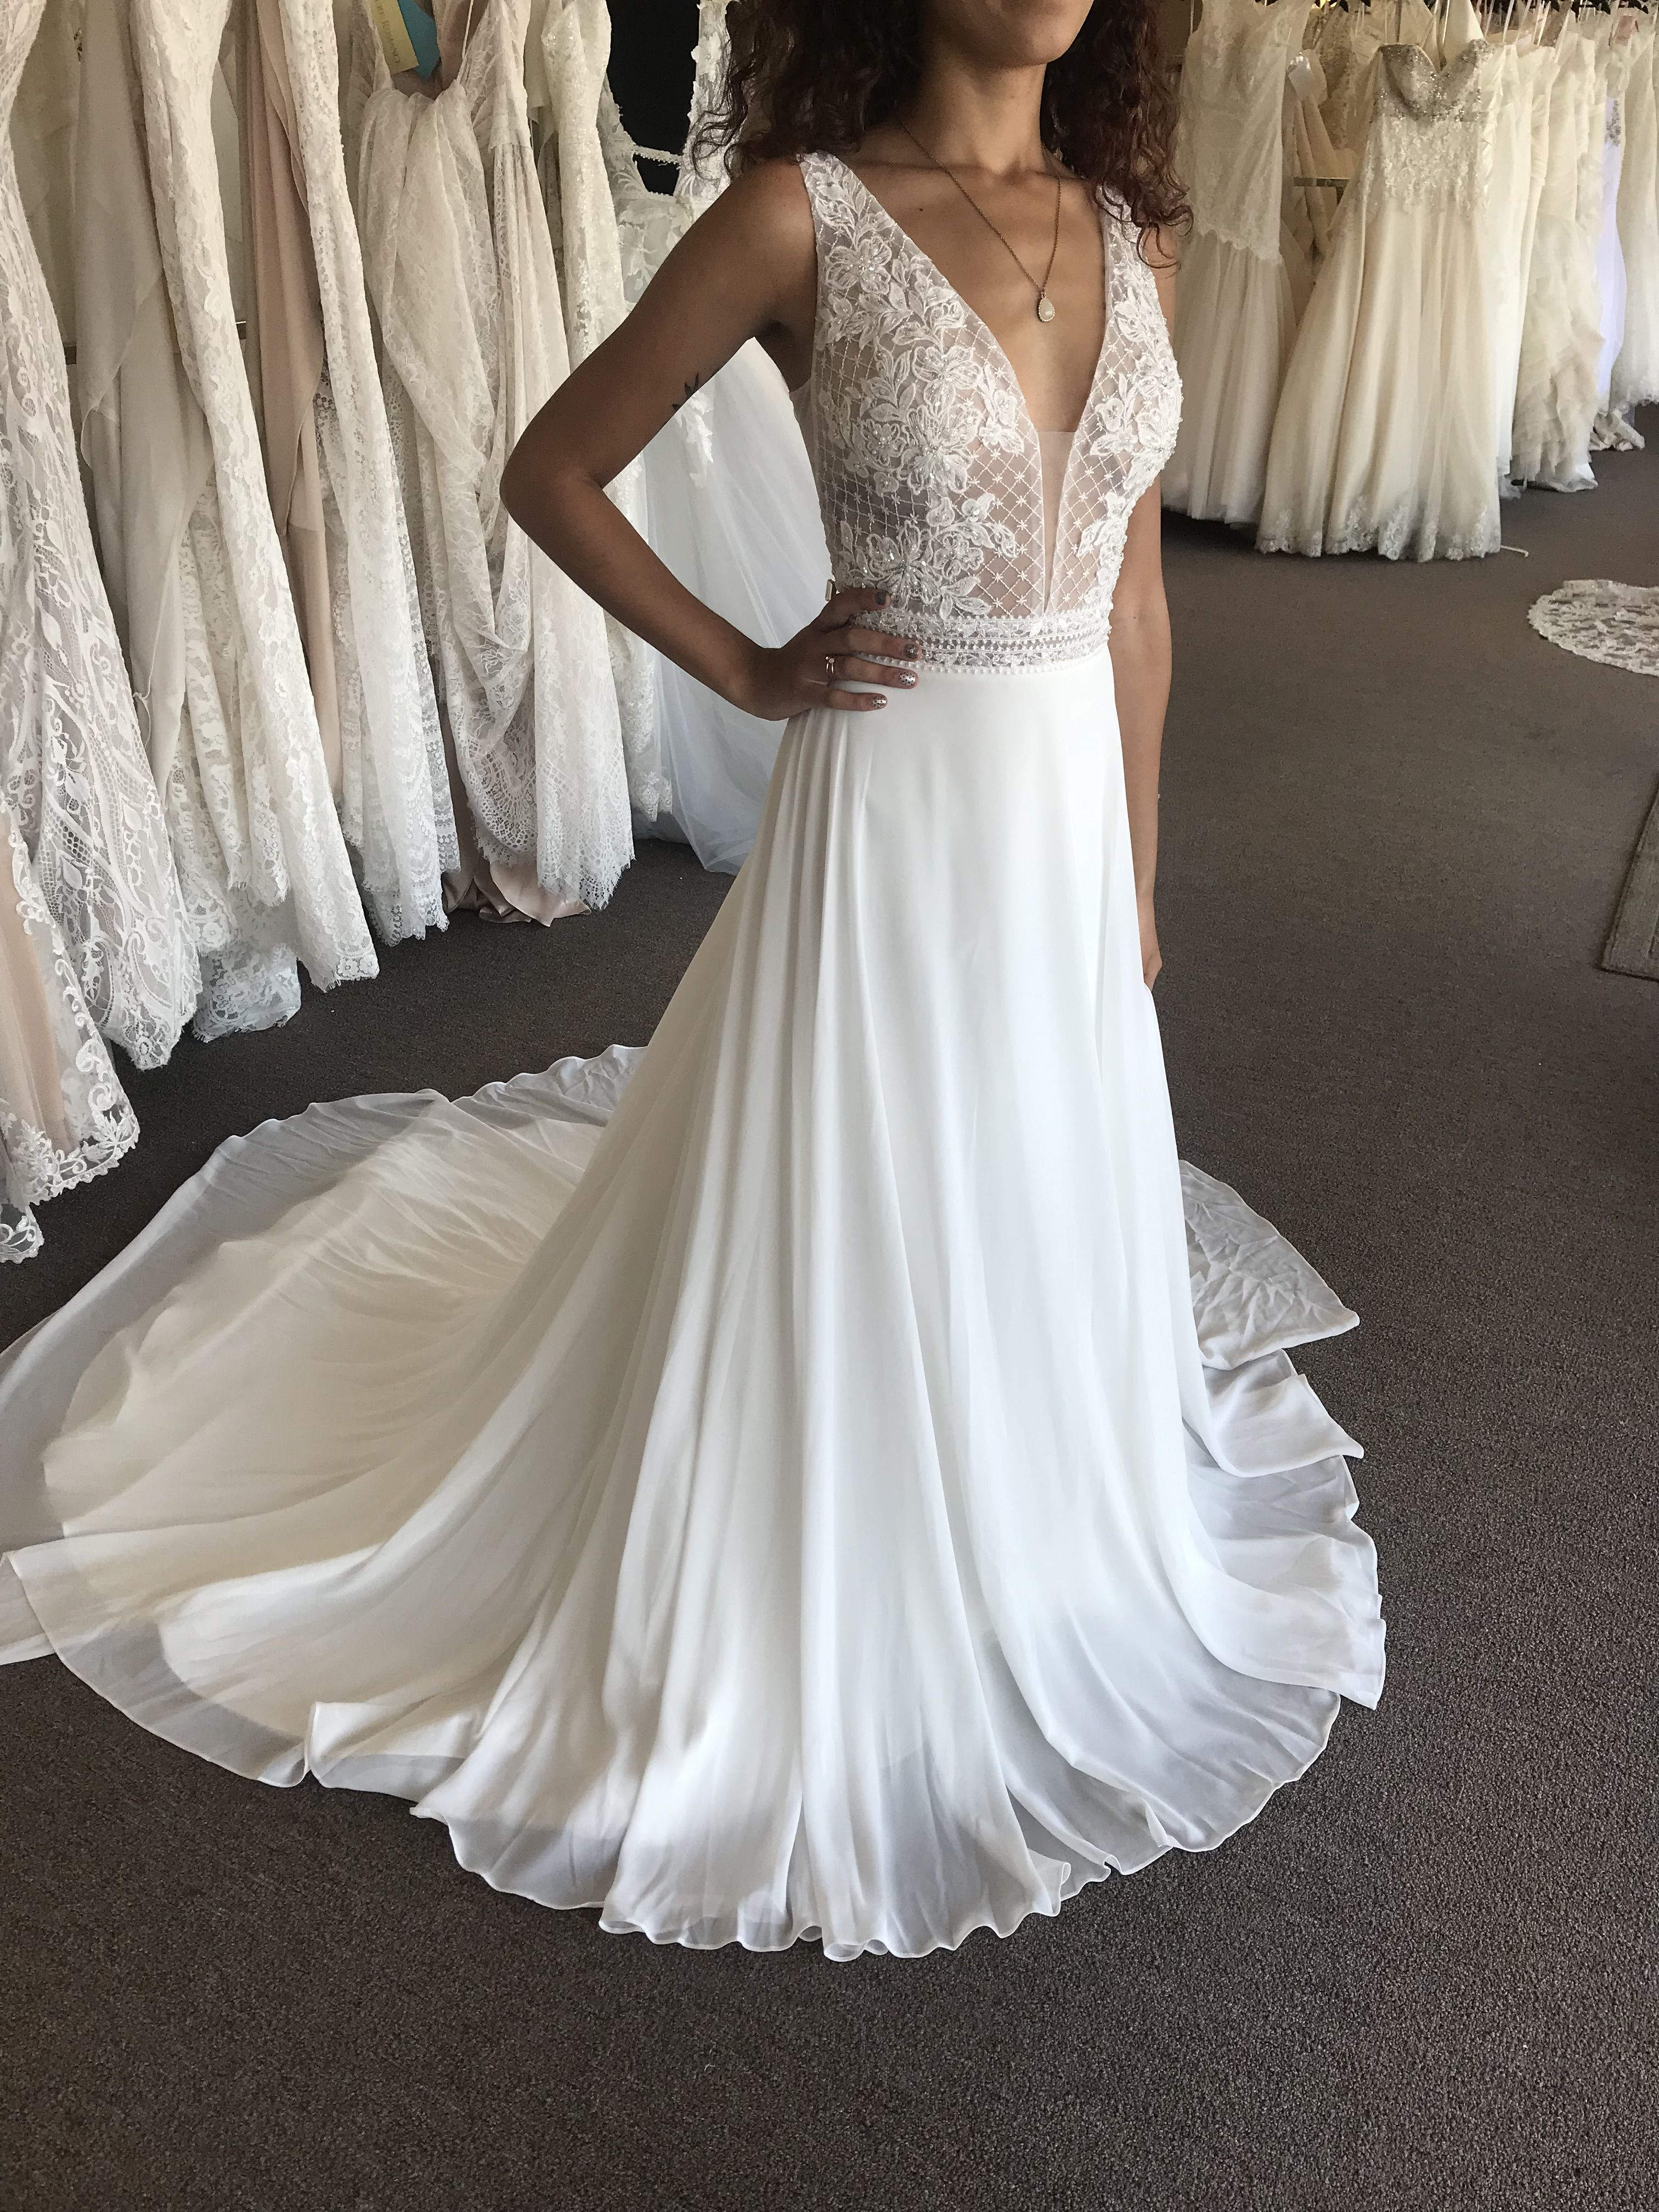 Pin By Wendy S Bridal Fort Wayne In On Store Pictures Wedding